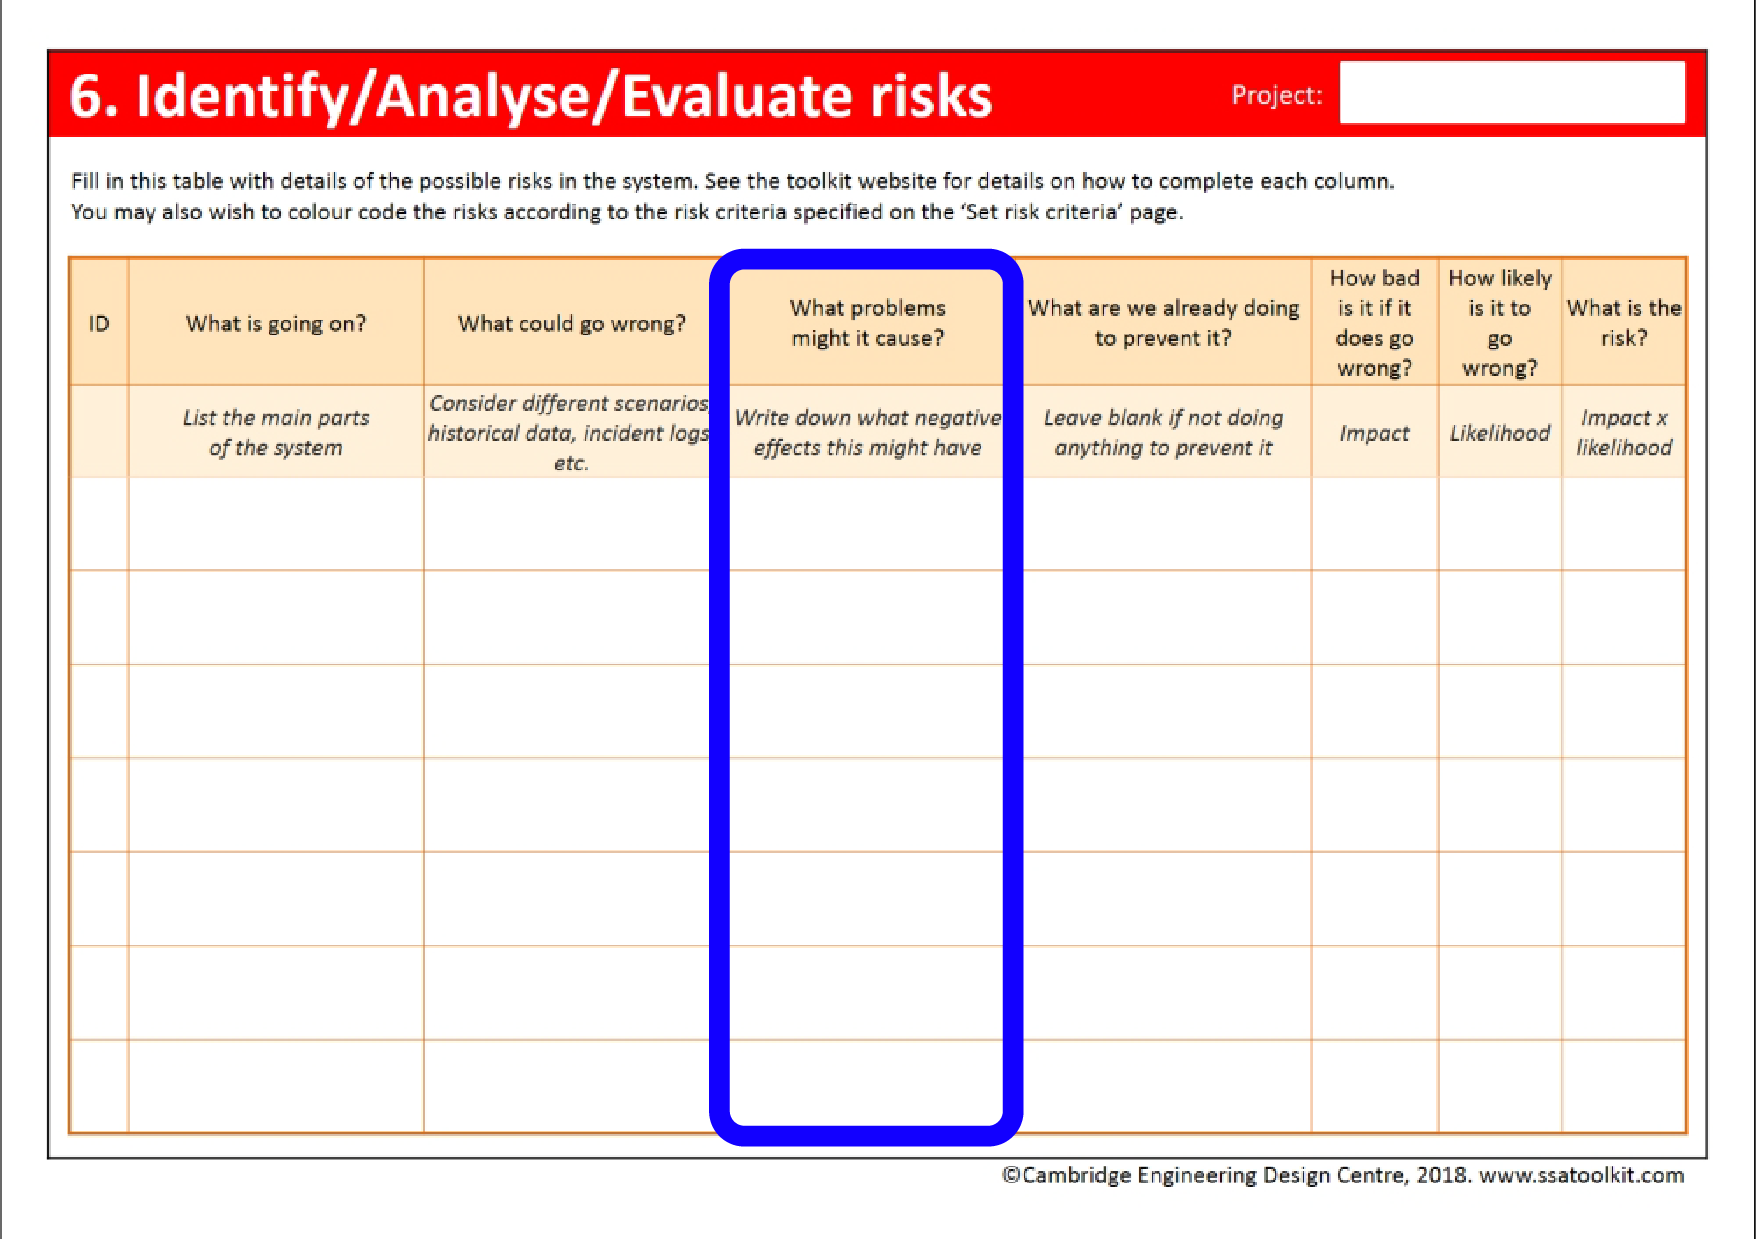 Screenshot of the Risks page of the assessment form